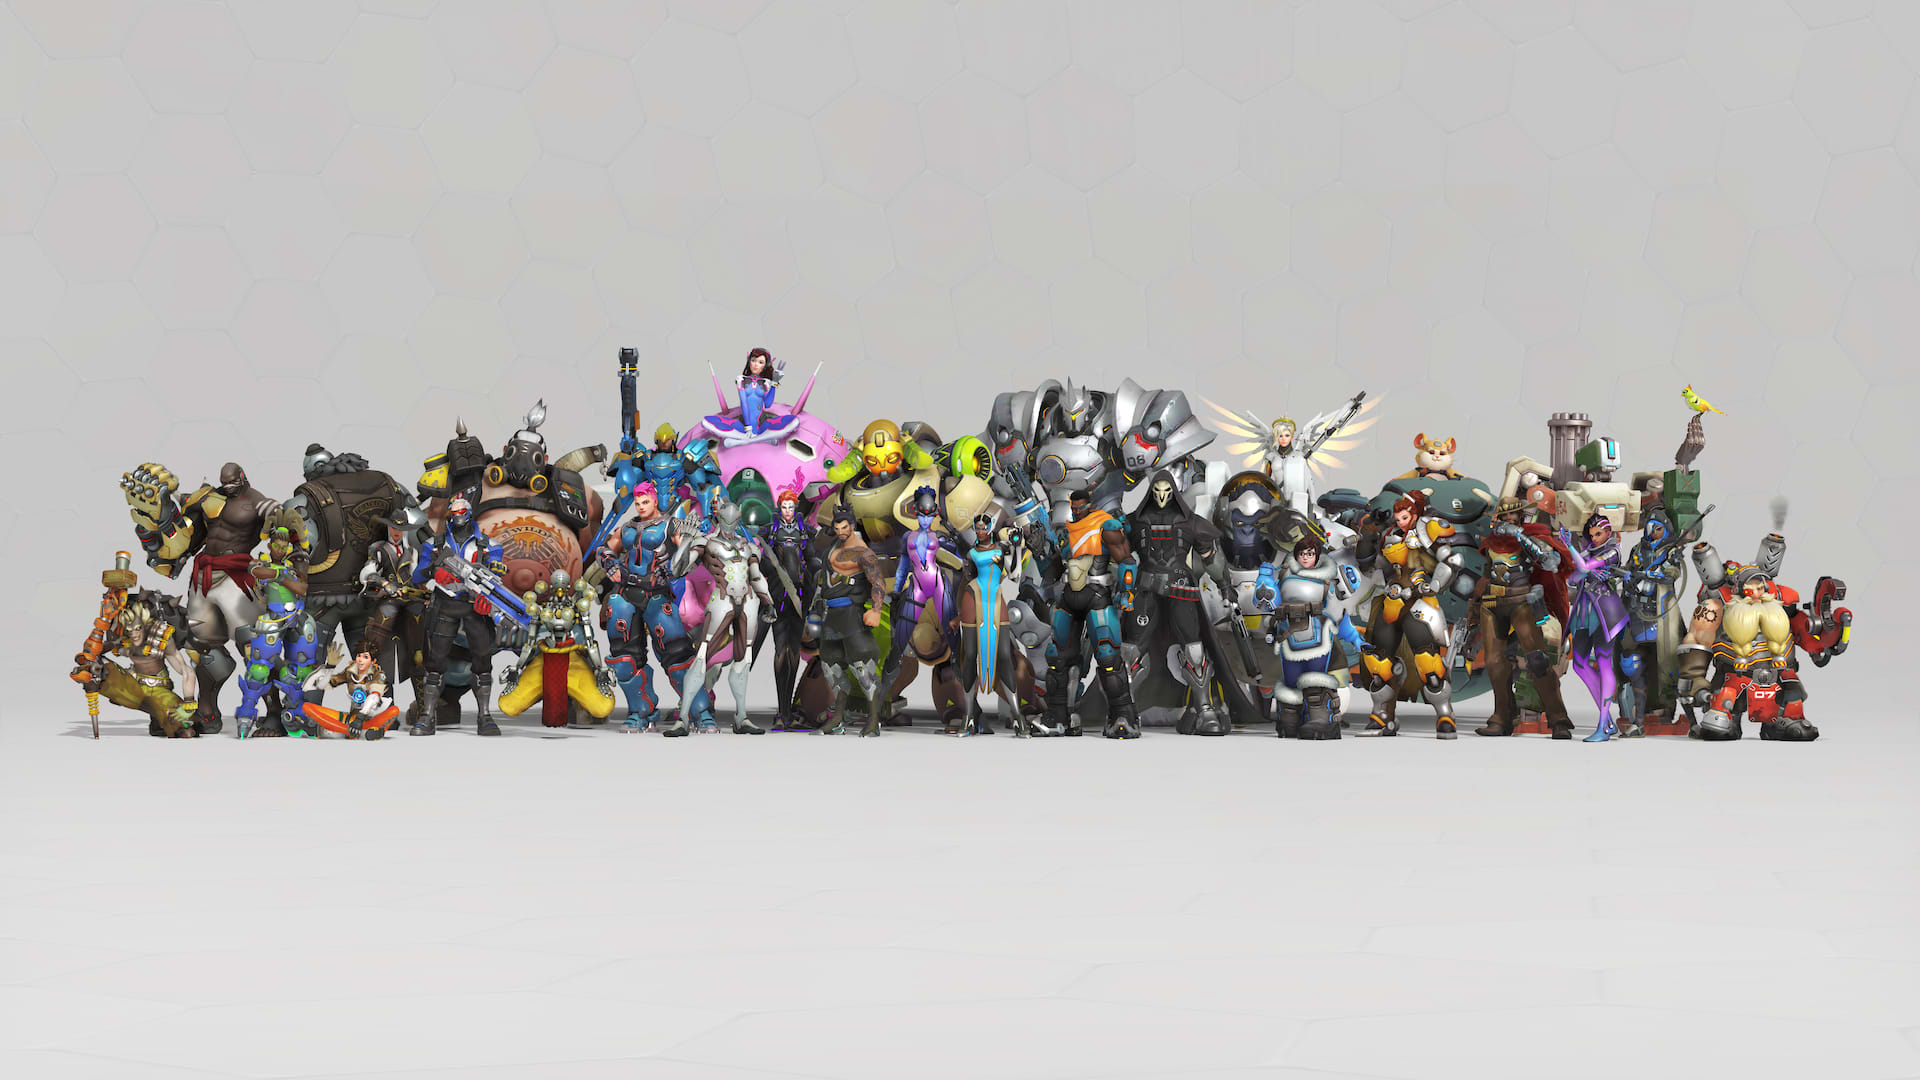 Overwatch Anniversary 2019 is now available on live servers.